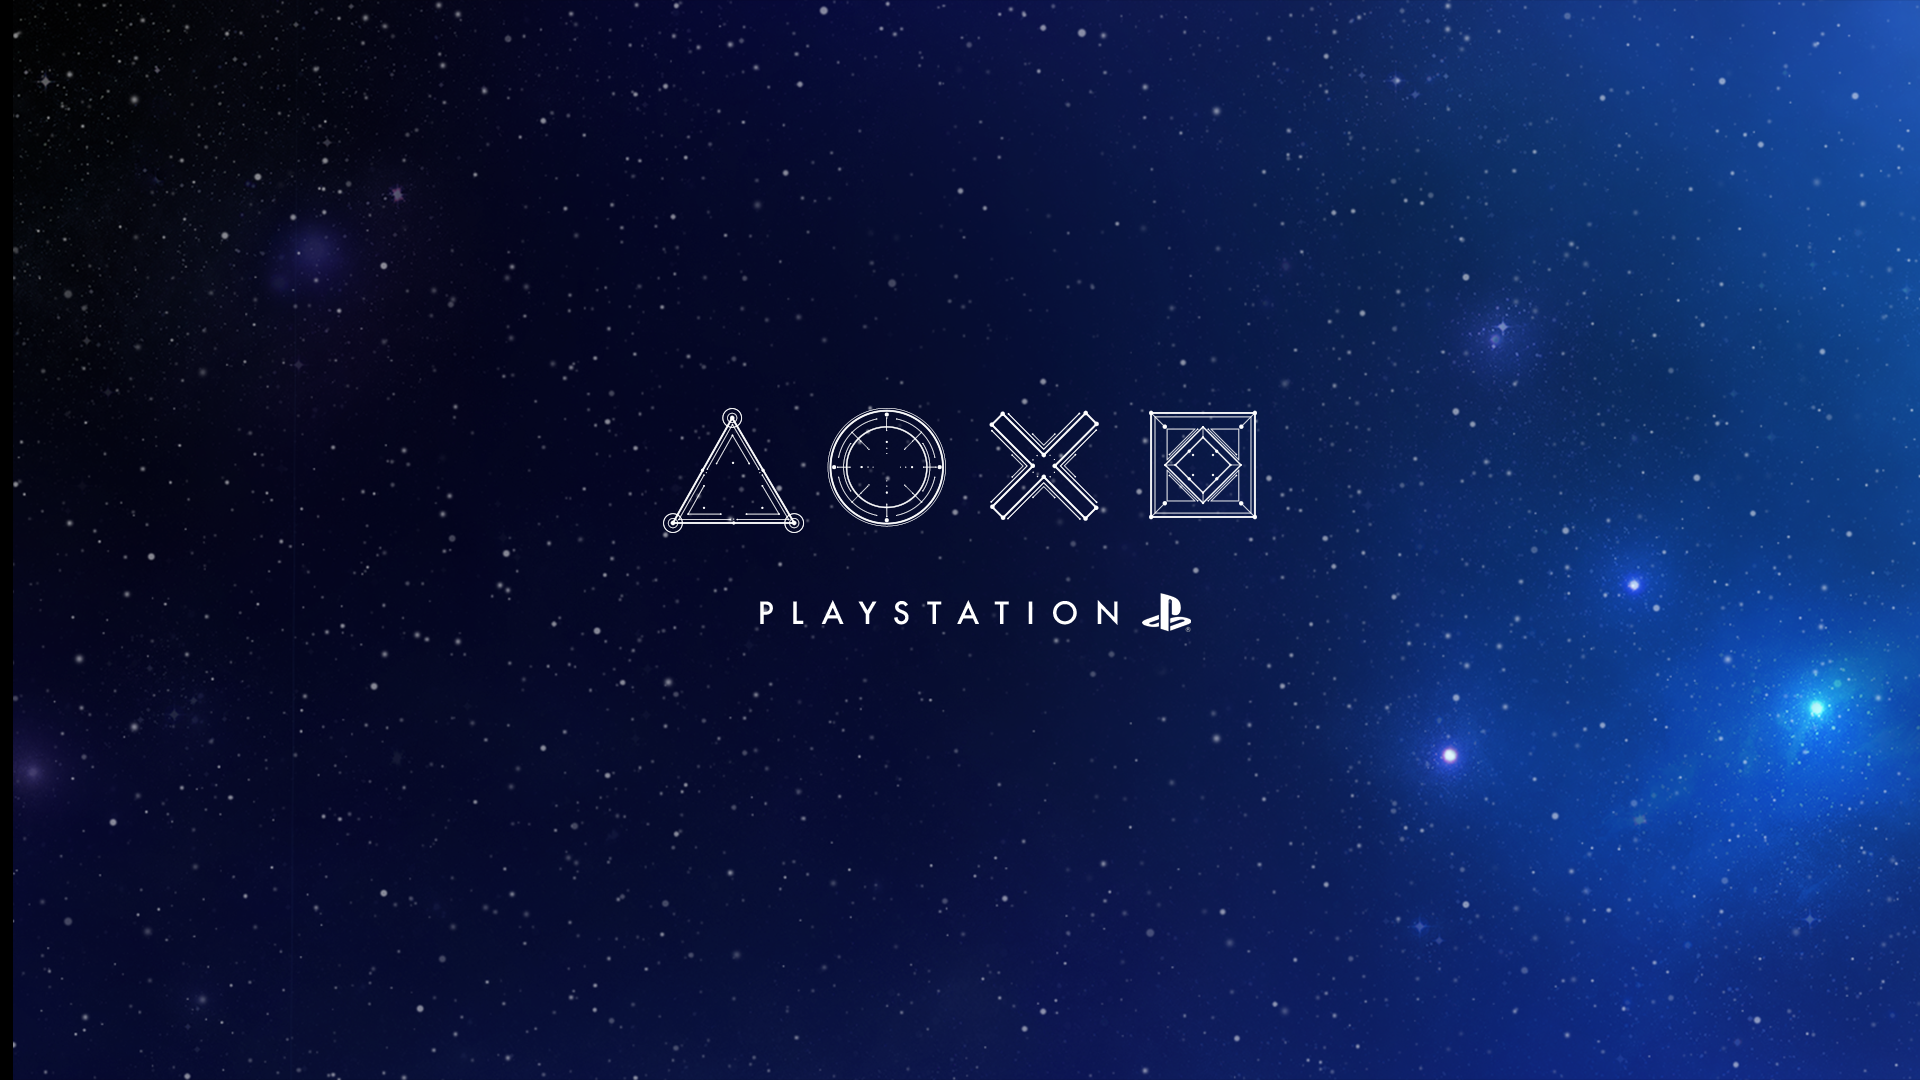 playstation wallpaper 2017 hd by firawallcesar on deviantart